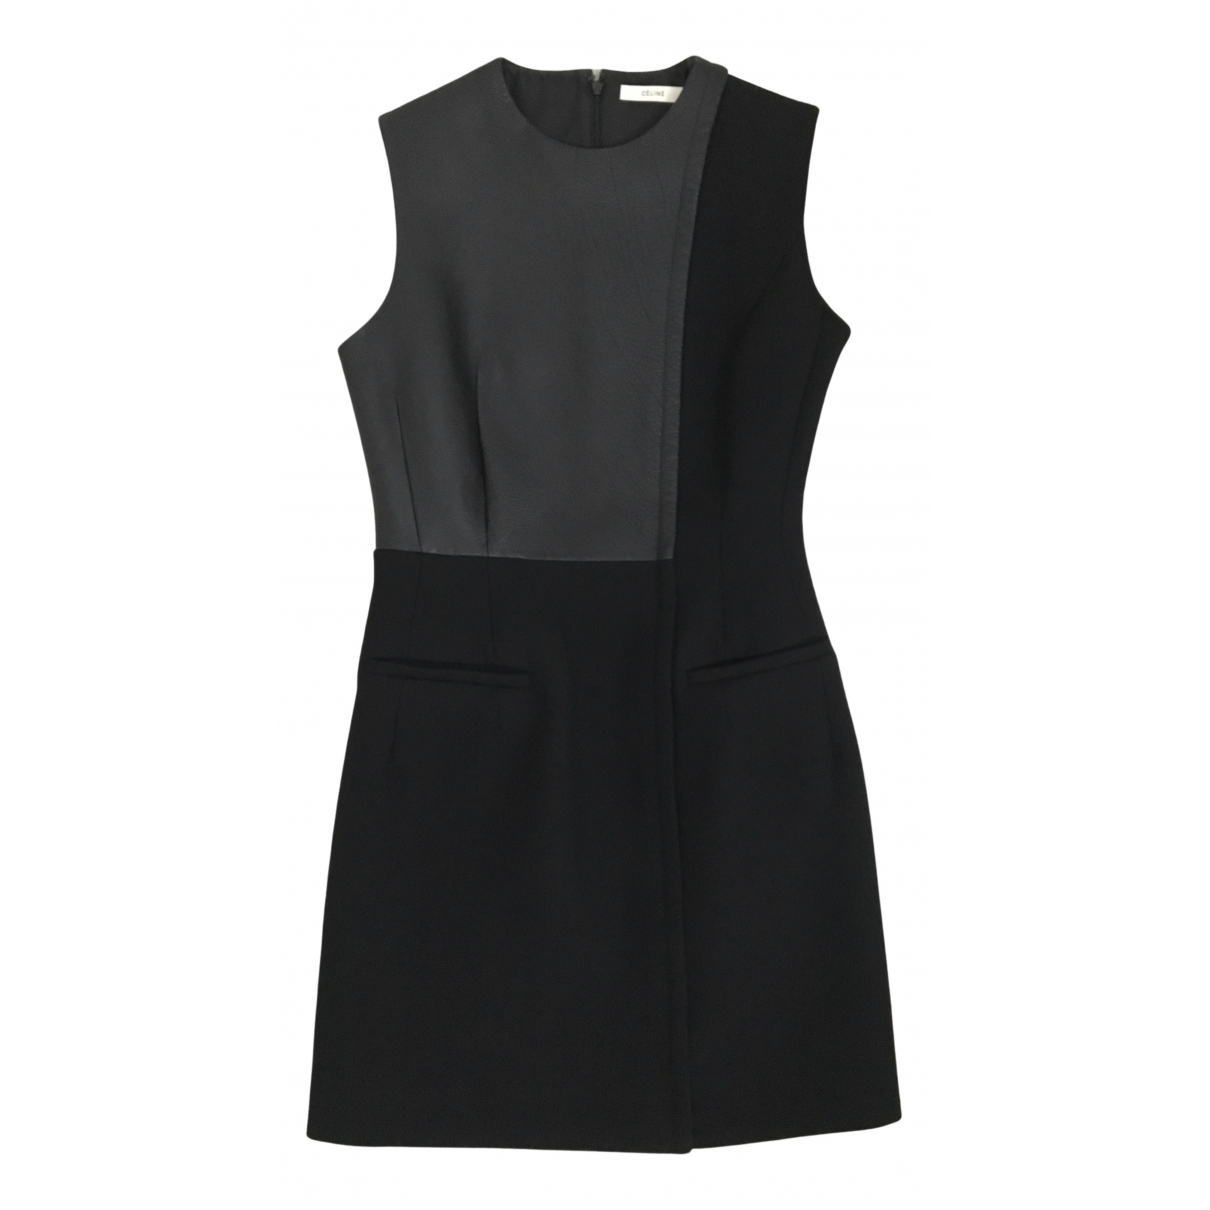 Celine \N Black Wool dress for Women 36 FR